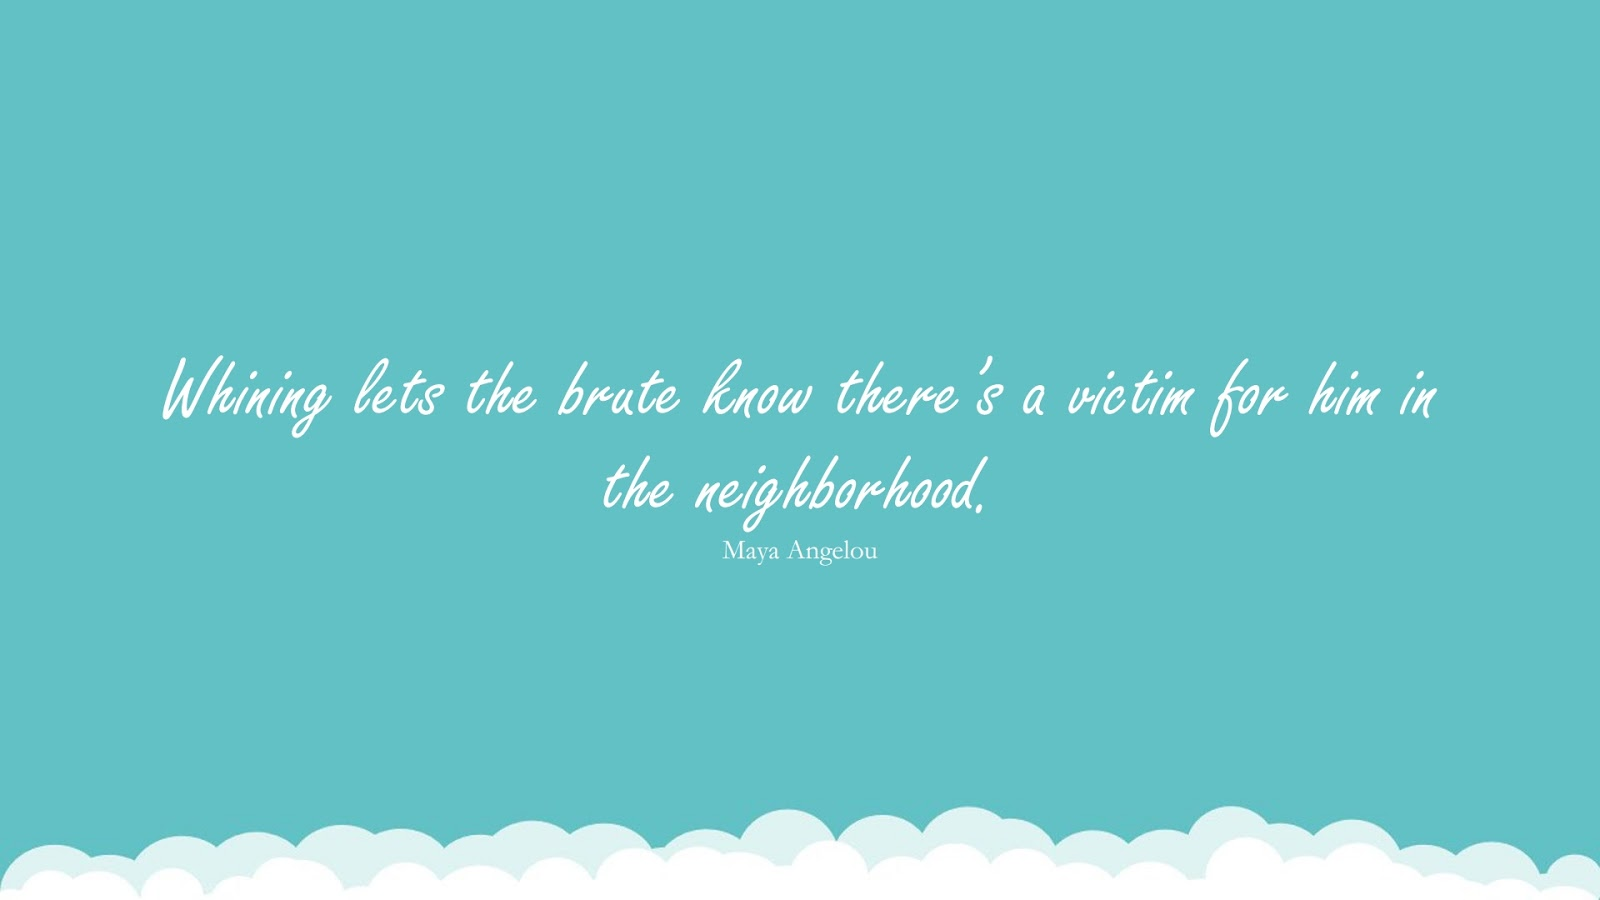 Whining lets the brute know there's a victim for him in the neighborhood. (Maya Angelou);  #MayaAngelouQuotesandSayings